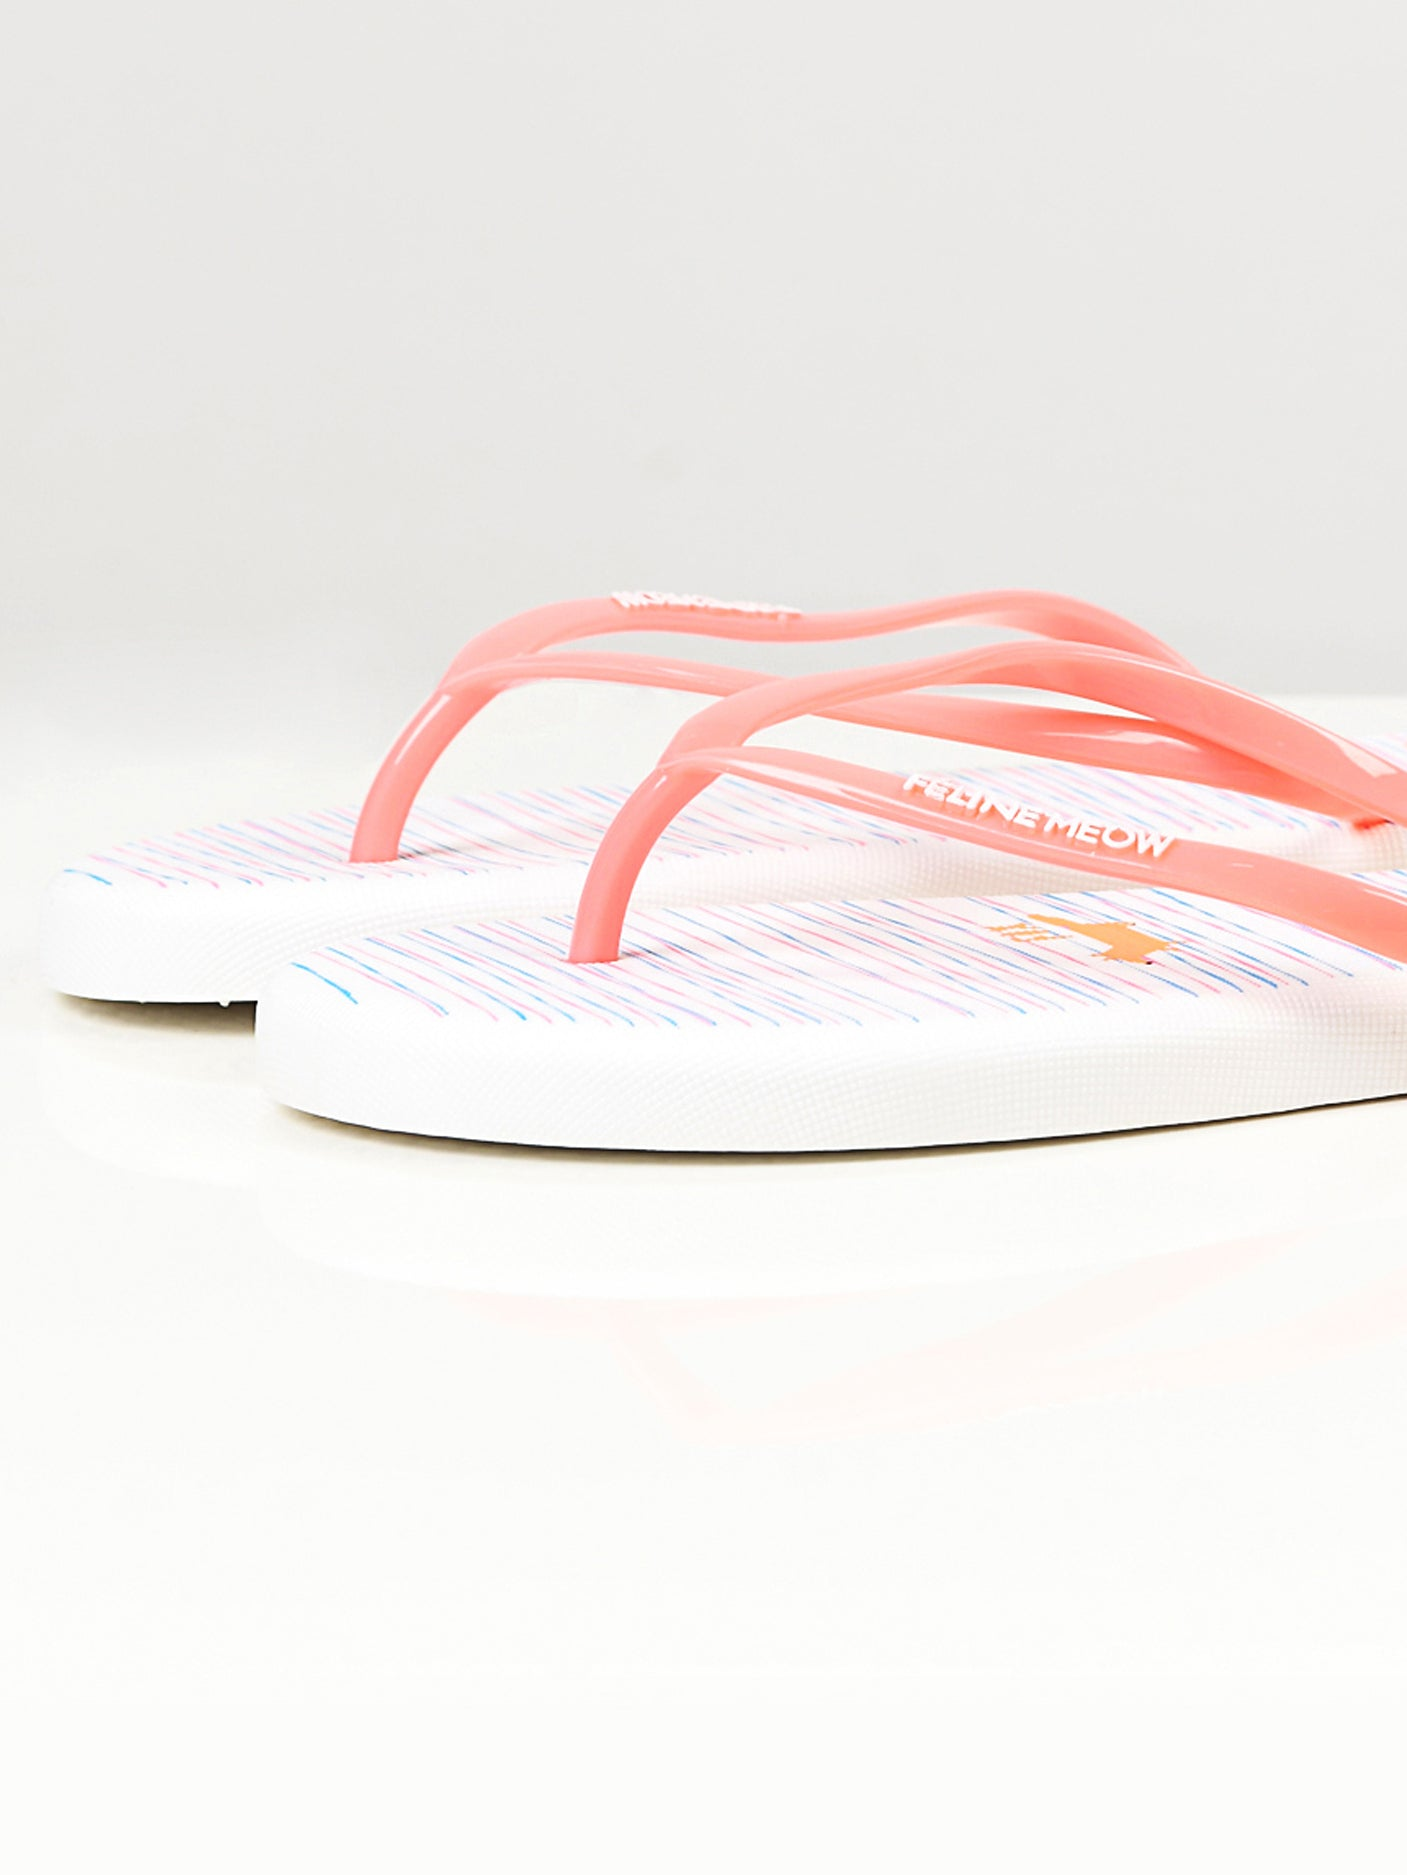 Printed Flip Flops -  White and Peach